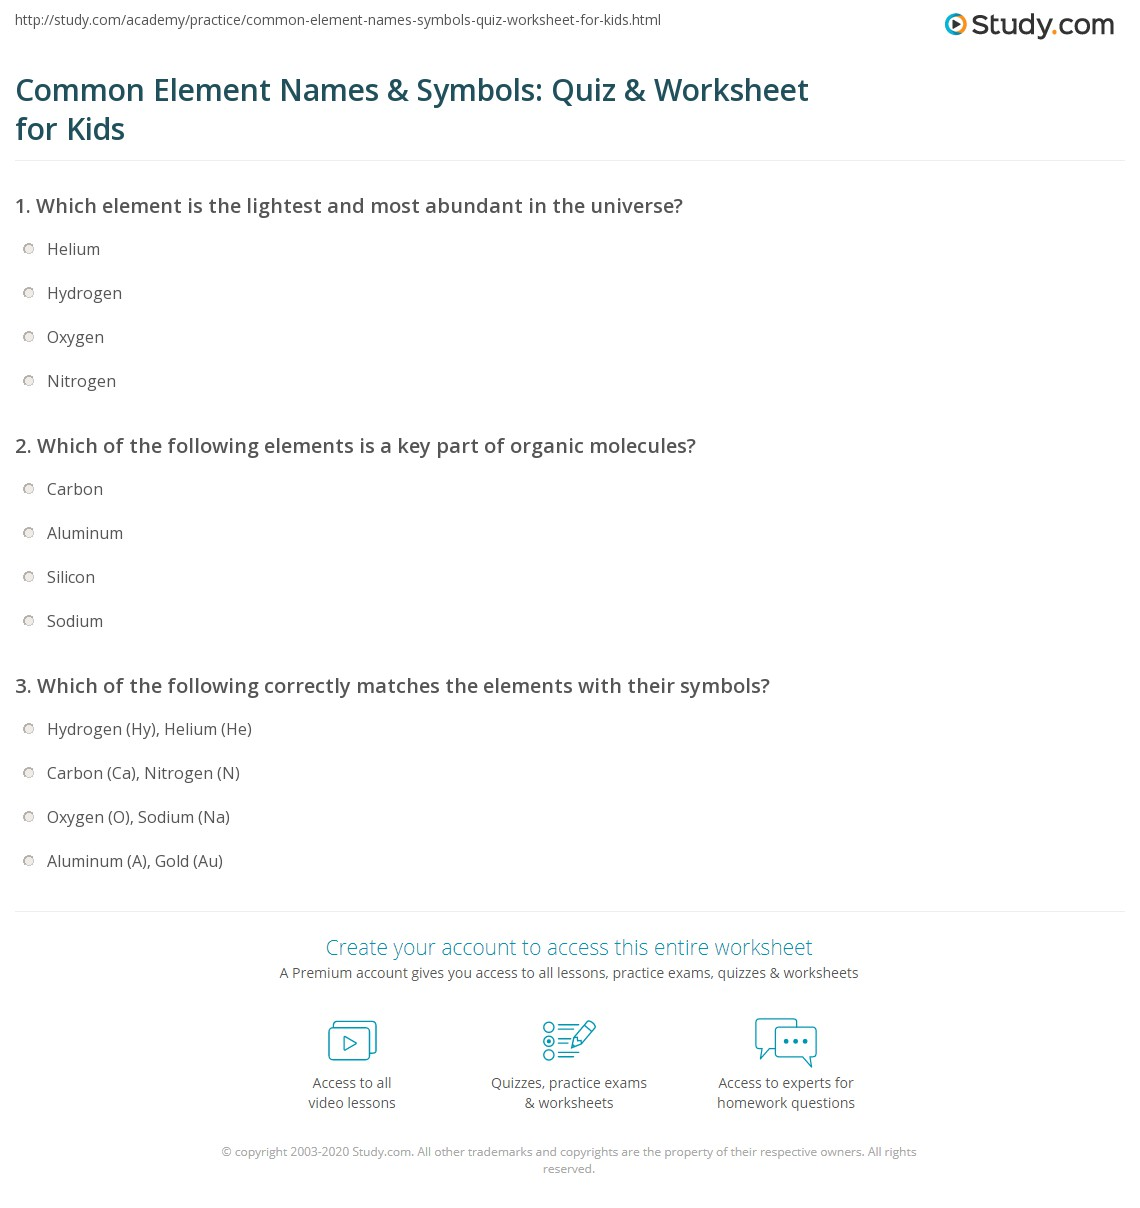 Common Element Names Symbols Quiz Worksheet For Kids Study